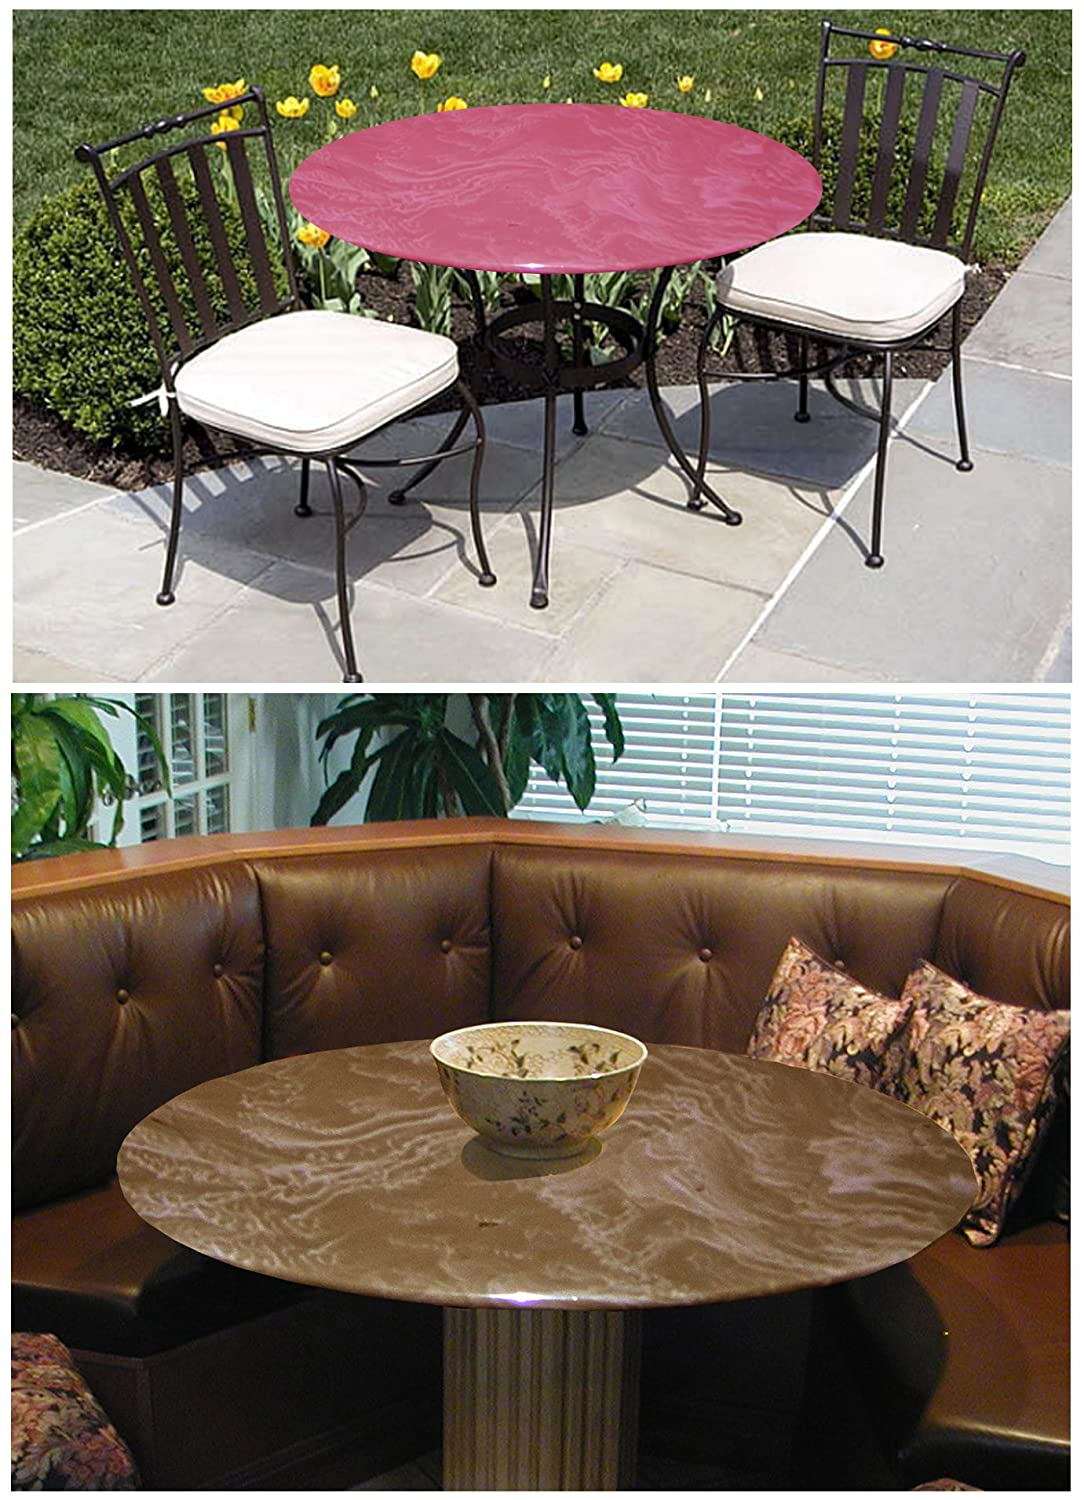 Dining Tables Indoor//Outdoor Fitted Table Cover for Glass Tables up to 48 Dia Color Mocha for All Round Tables Patio Tables